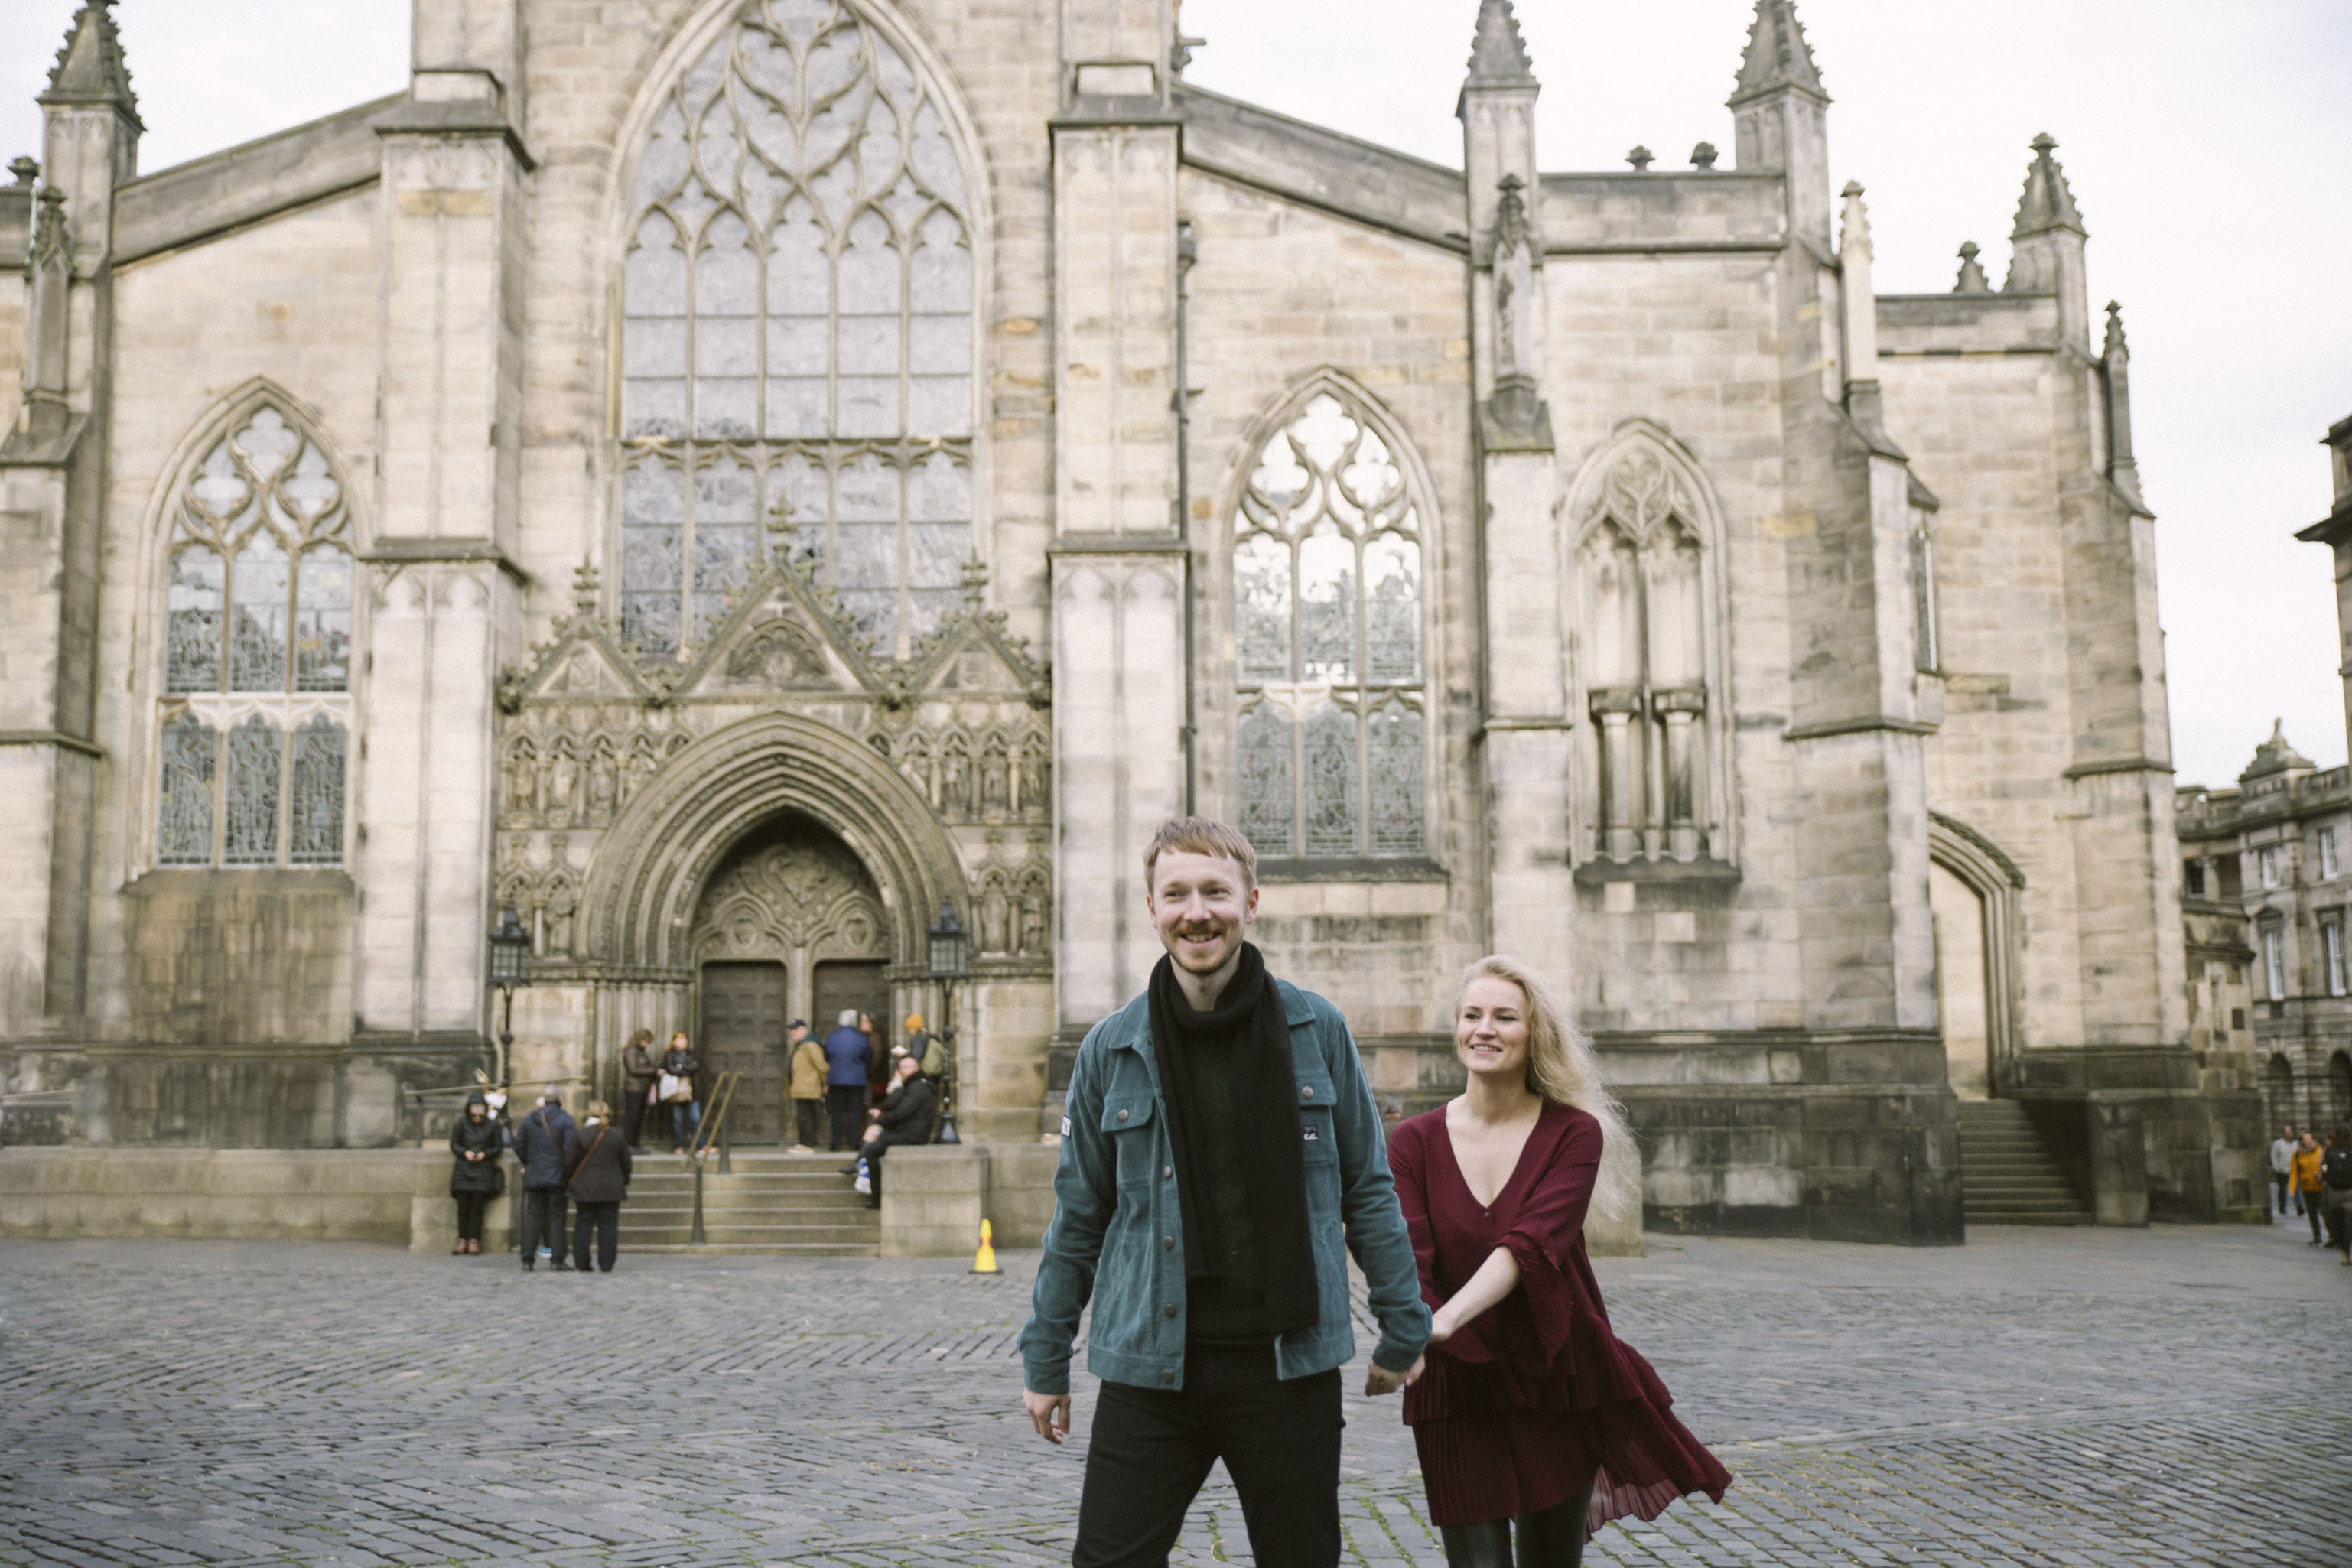 St Giles Cathedral Wedding Photography, Edinburgh Street Old Town Couple Photoshoot | Pre Wedding Photography | Engagement Portraits Scotland | Destination Elopement | Elope in Edinburgh | Couple | Ceranna Photography | Natural Light Photographer